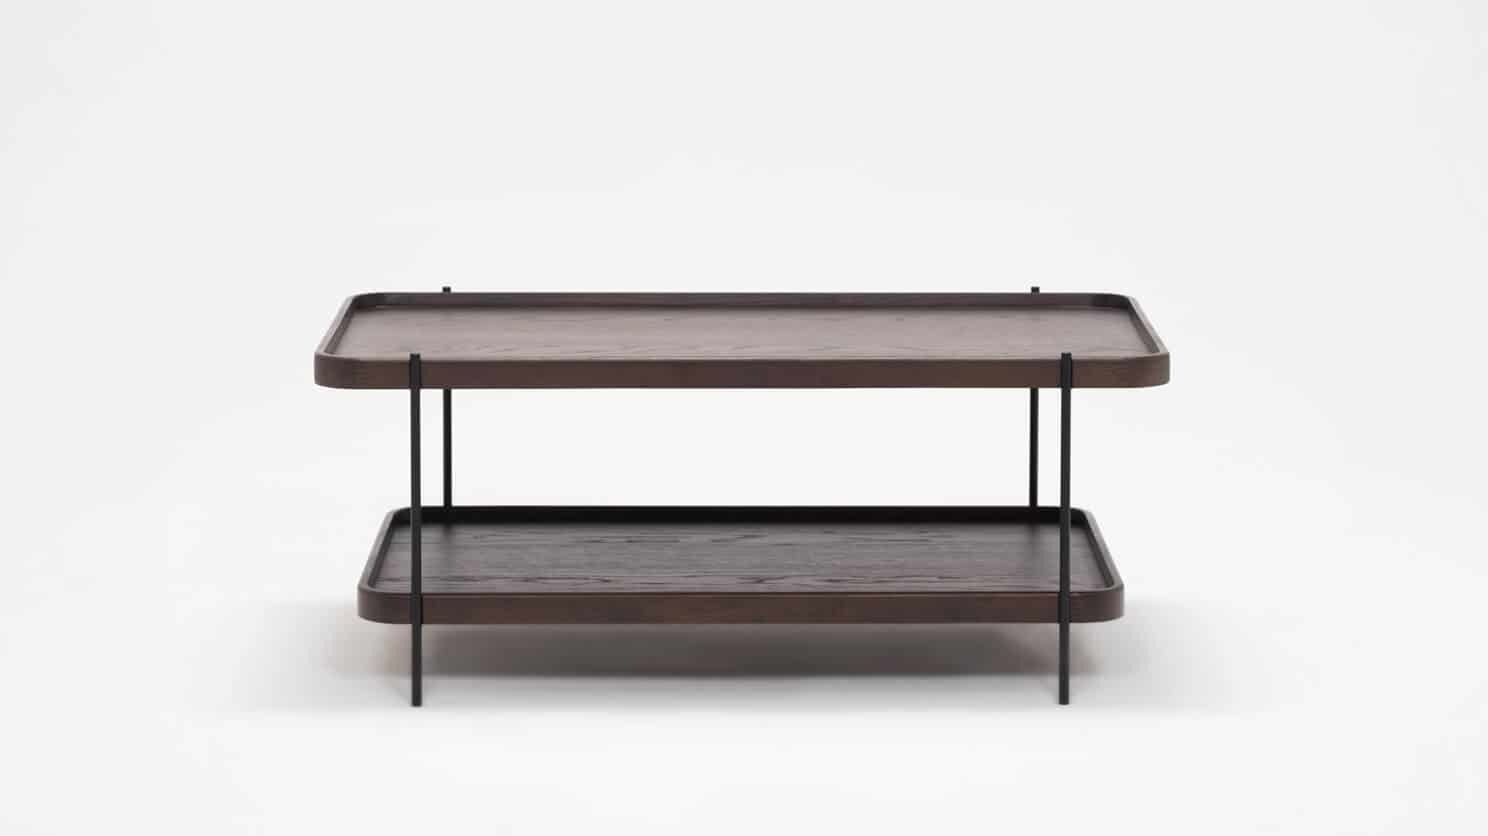 3020 419 17 3 coffee tables sage rectangular coffee table smoked oak front 01